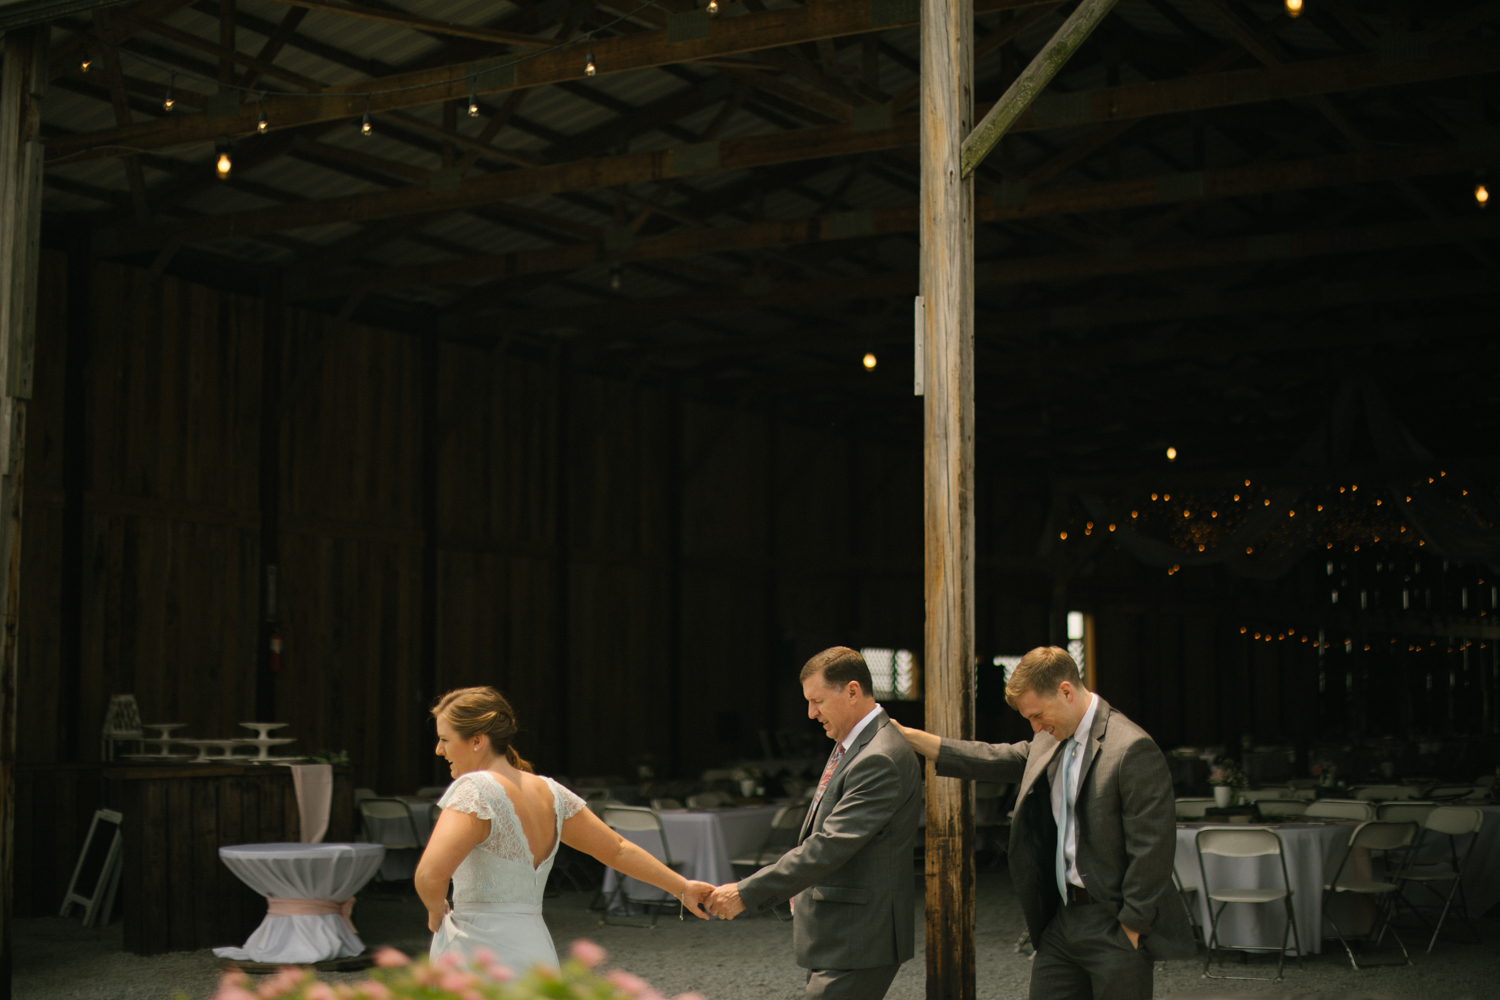 2019.06.01_CraskWedding_Starks-19.jpg